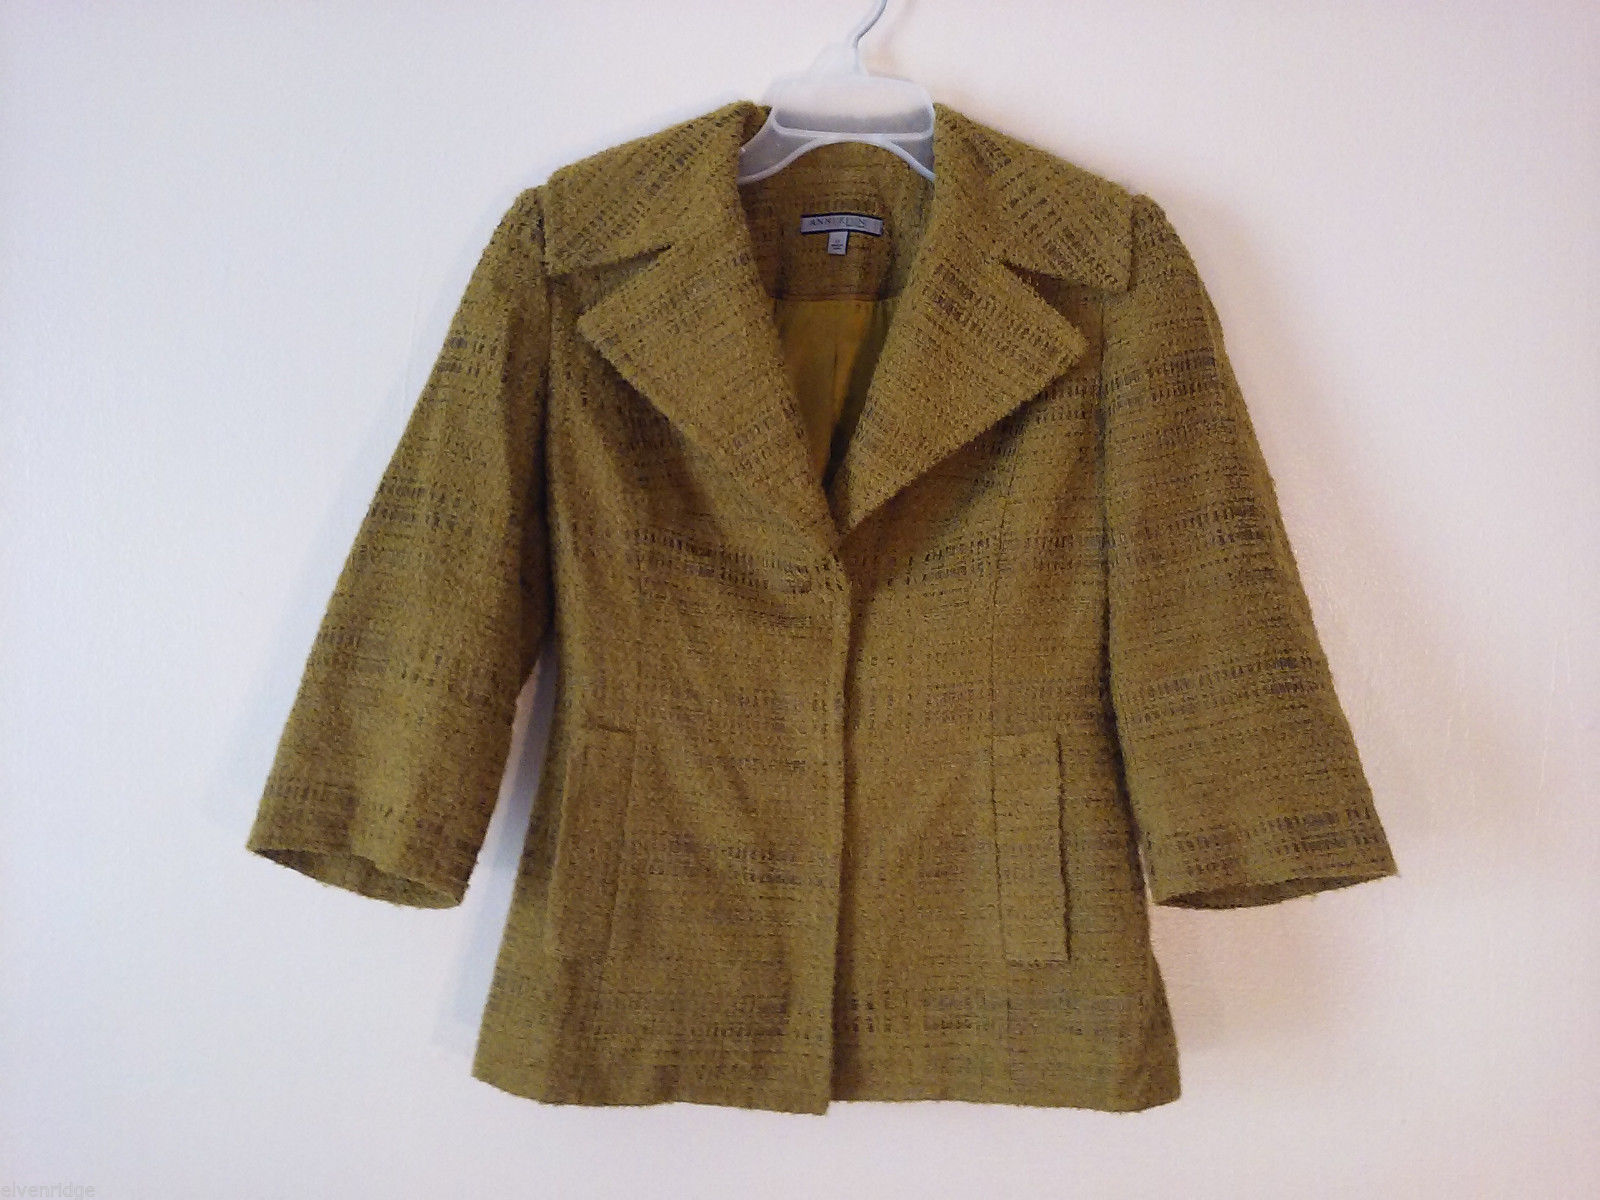 Anne Klein NY Women's Size 4 Petite 4P Blazer Jacket Pea Yellow-Green 3/4 Sleeve